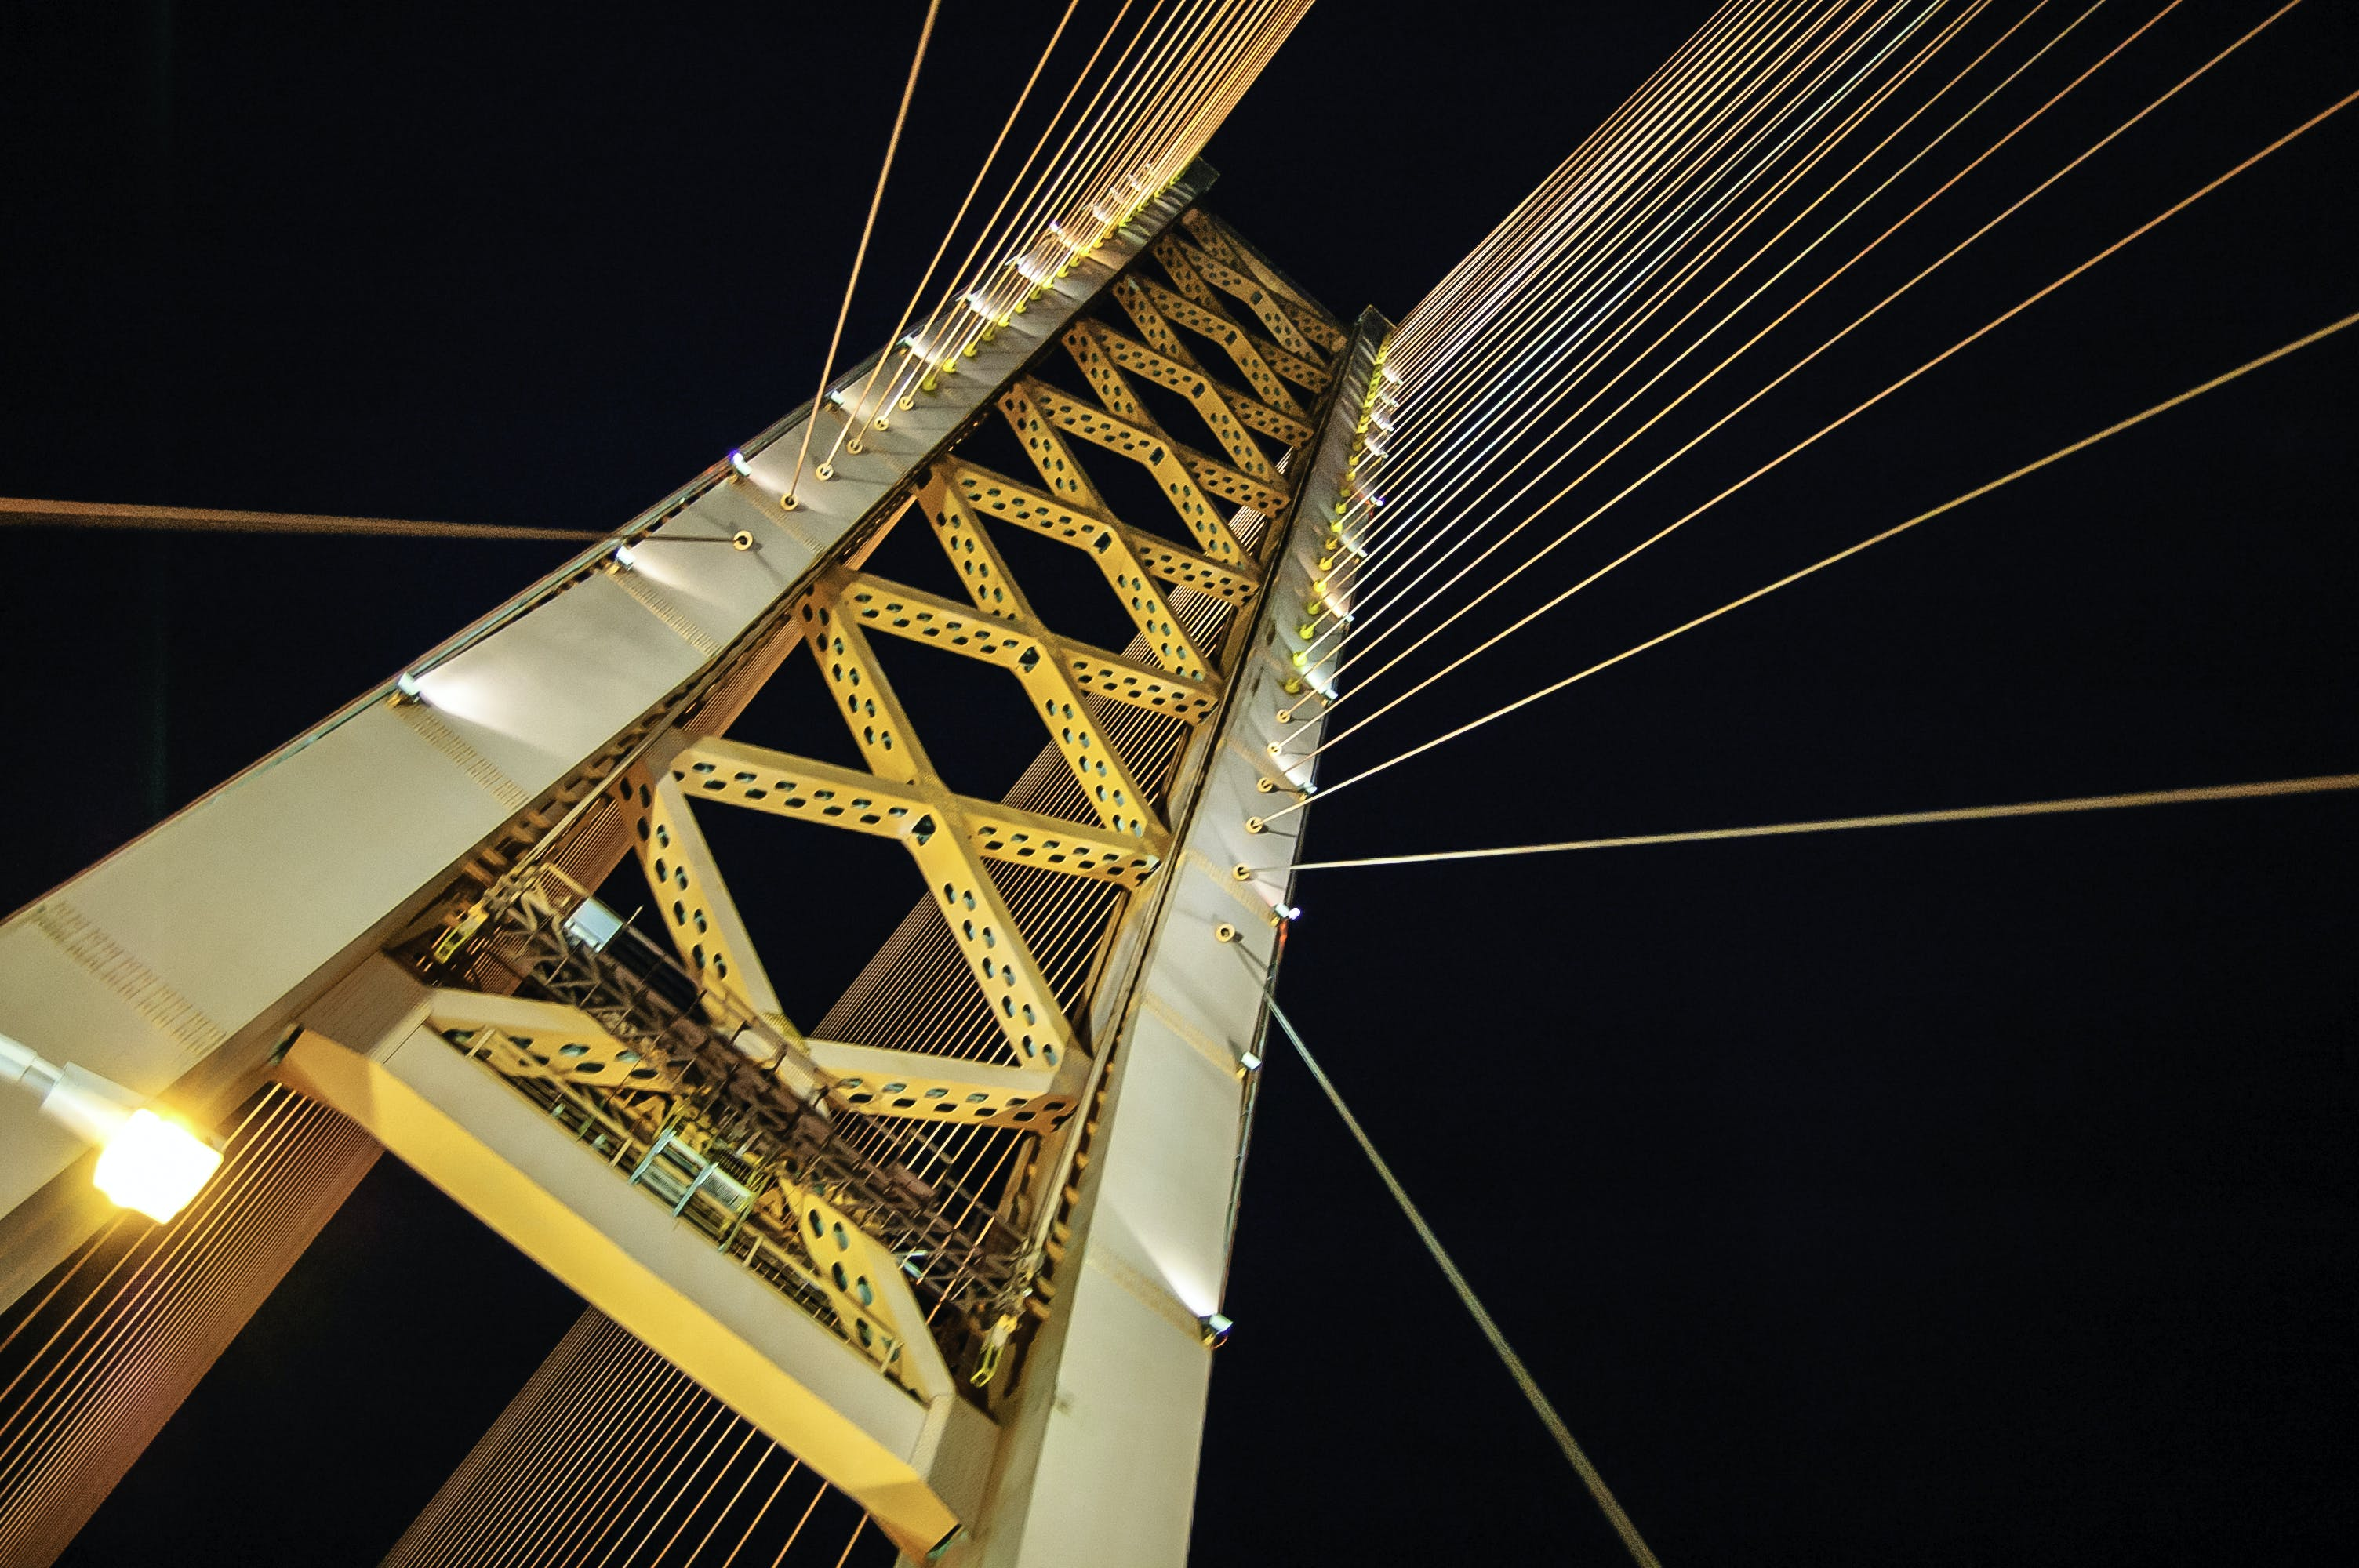 Low Angle Photography of White and Yellow Suspension Bridge at Nighttime